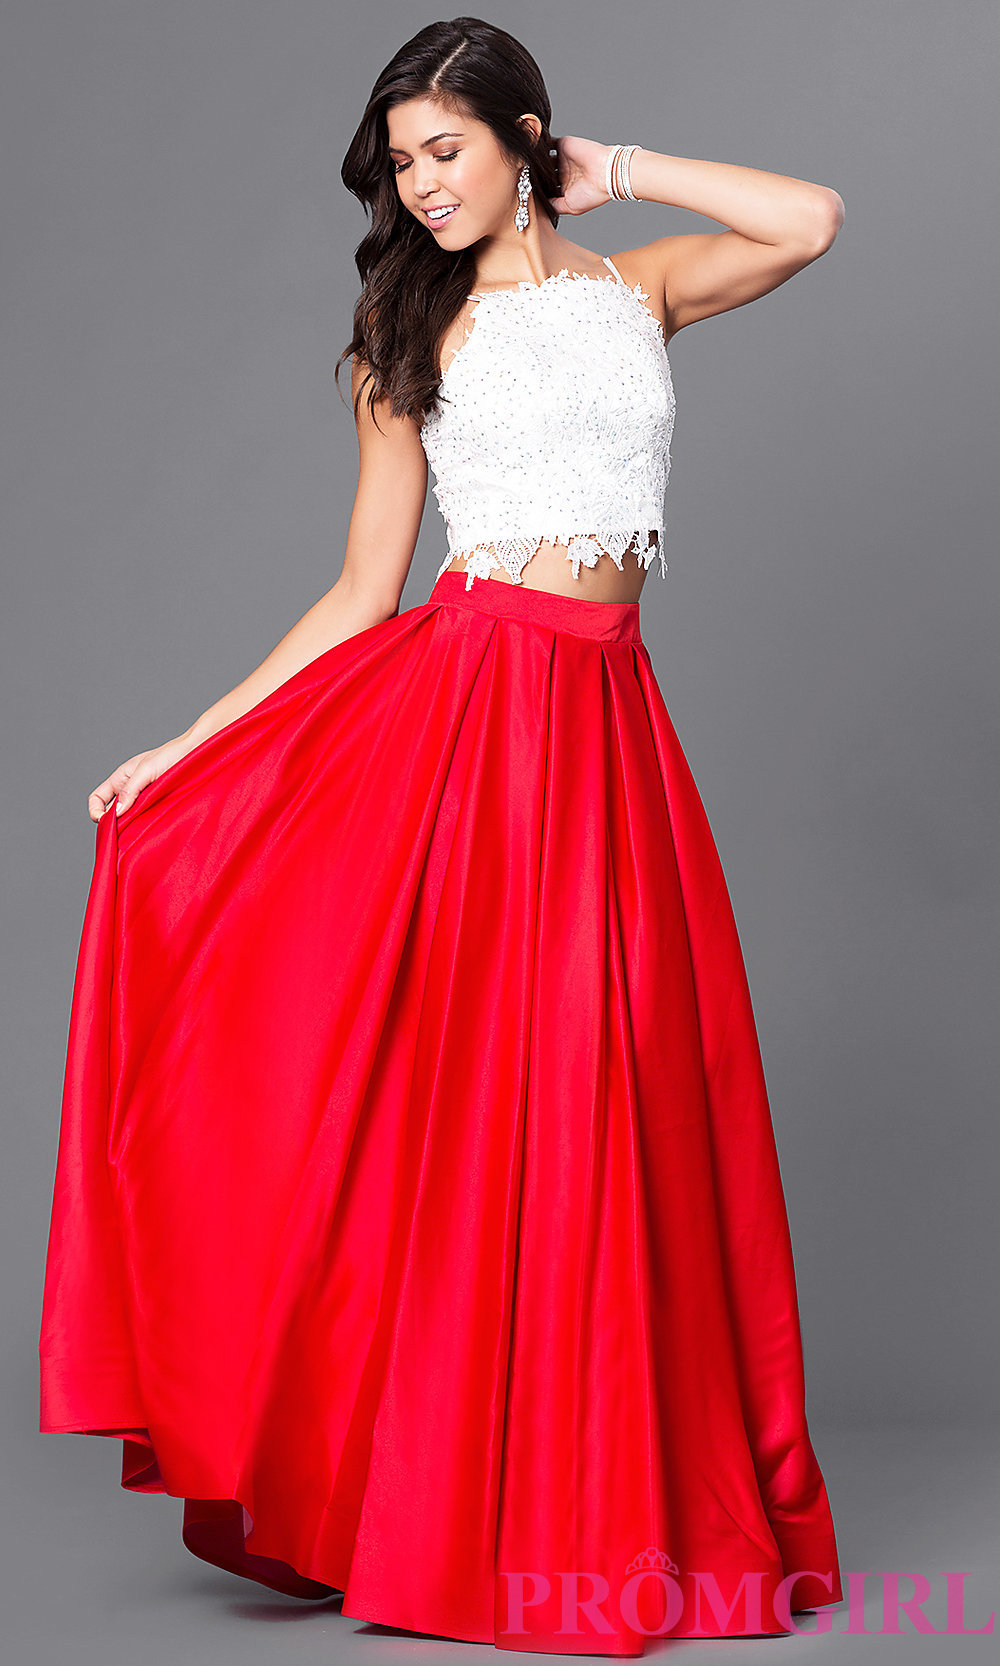 maxi-dresses-for-christmas-1